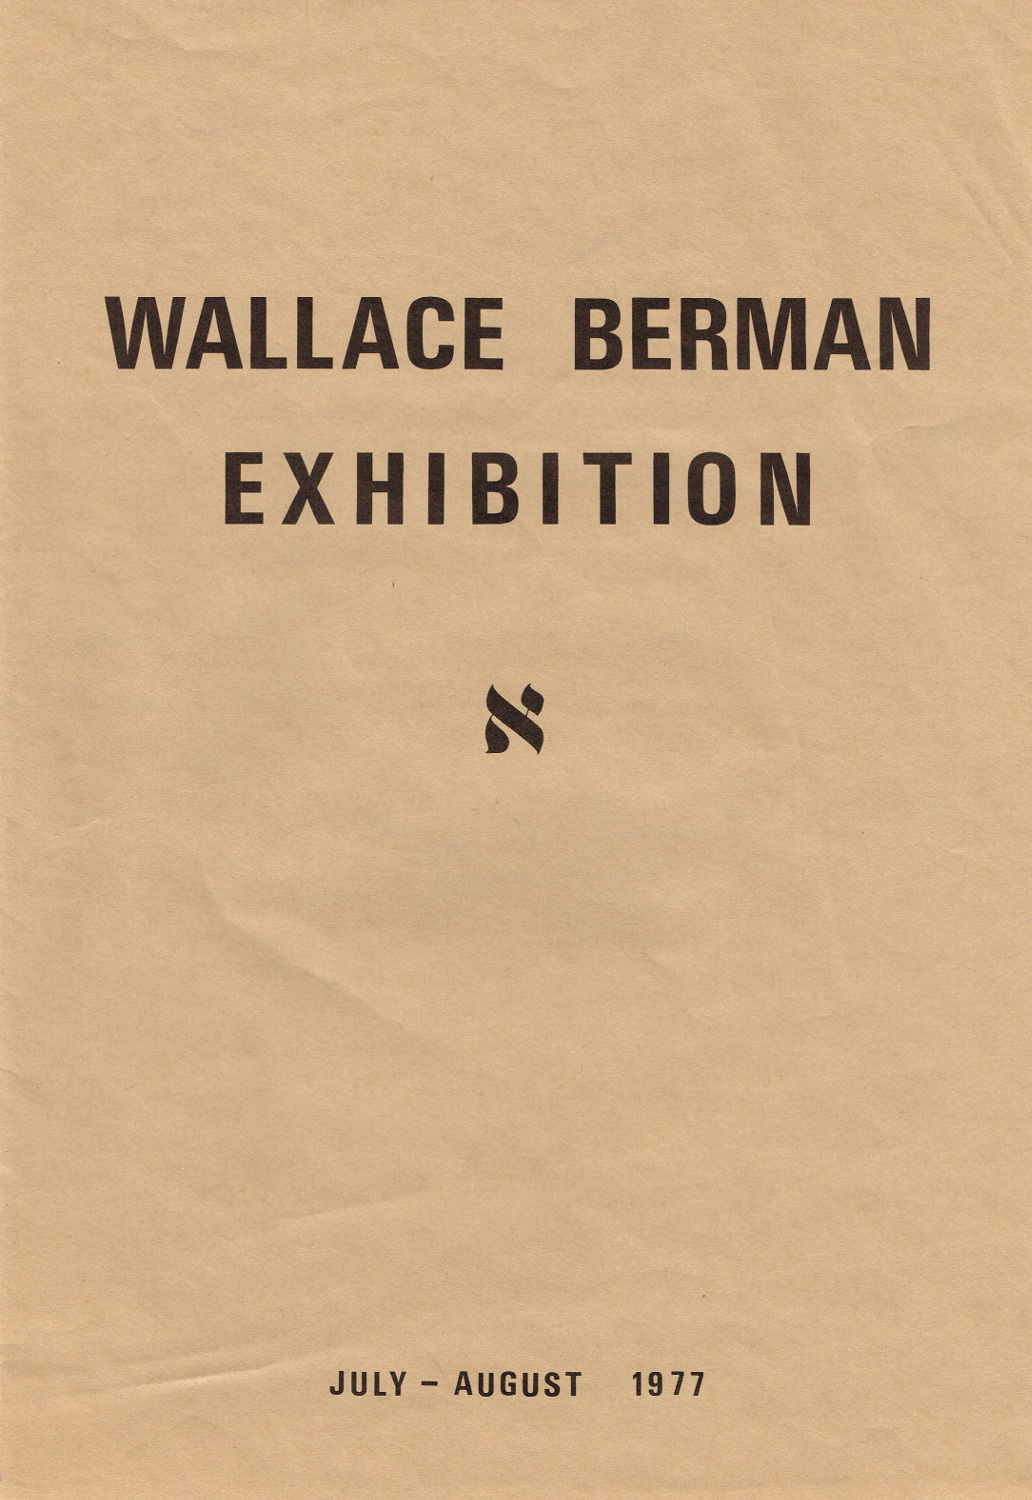 (BERMAN, WALLACE). HERMS, GEORGE - WALLACE BERMAN EXHIBITION JULY - AUGUST 1977